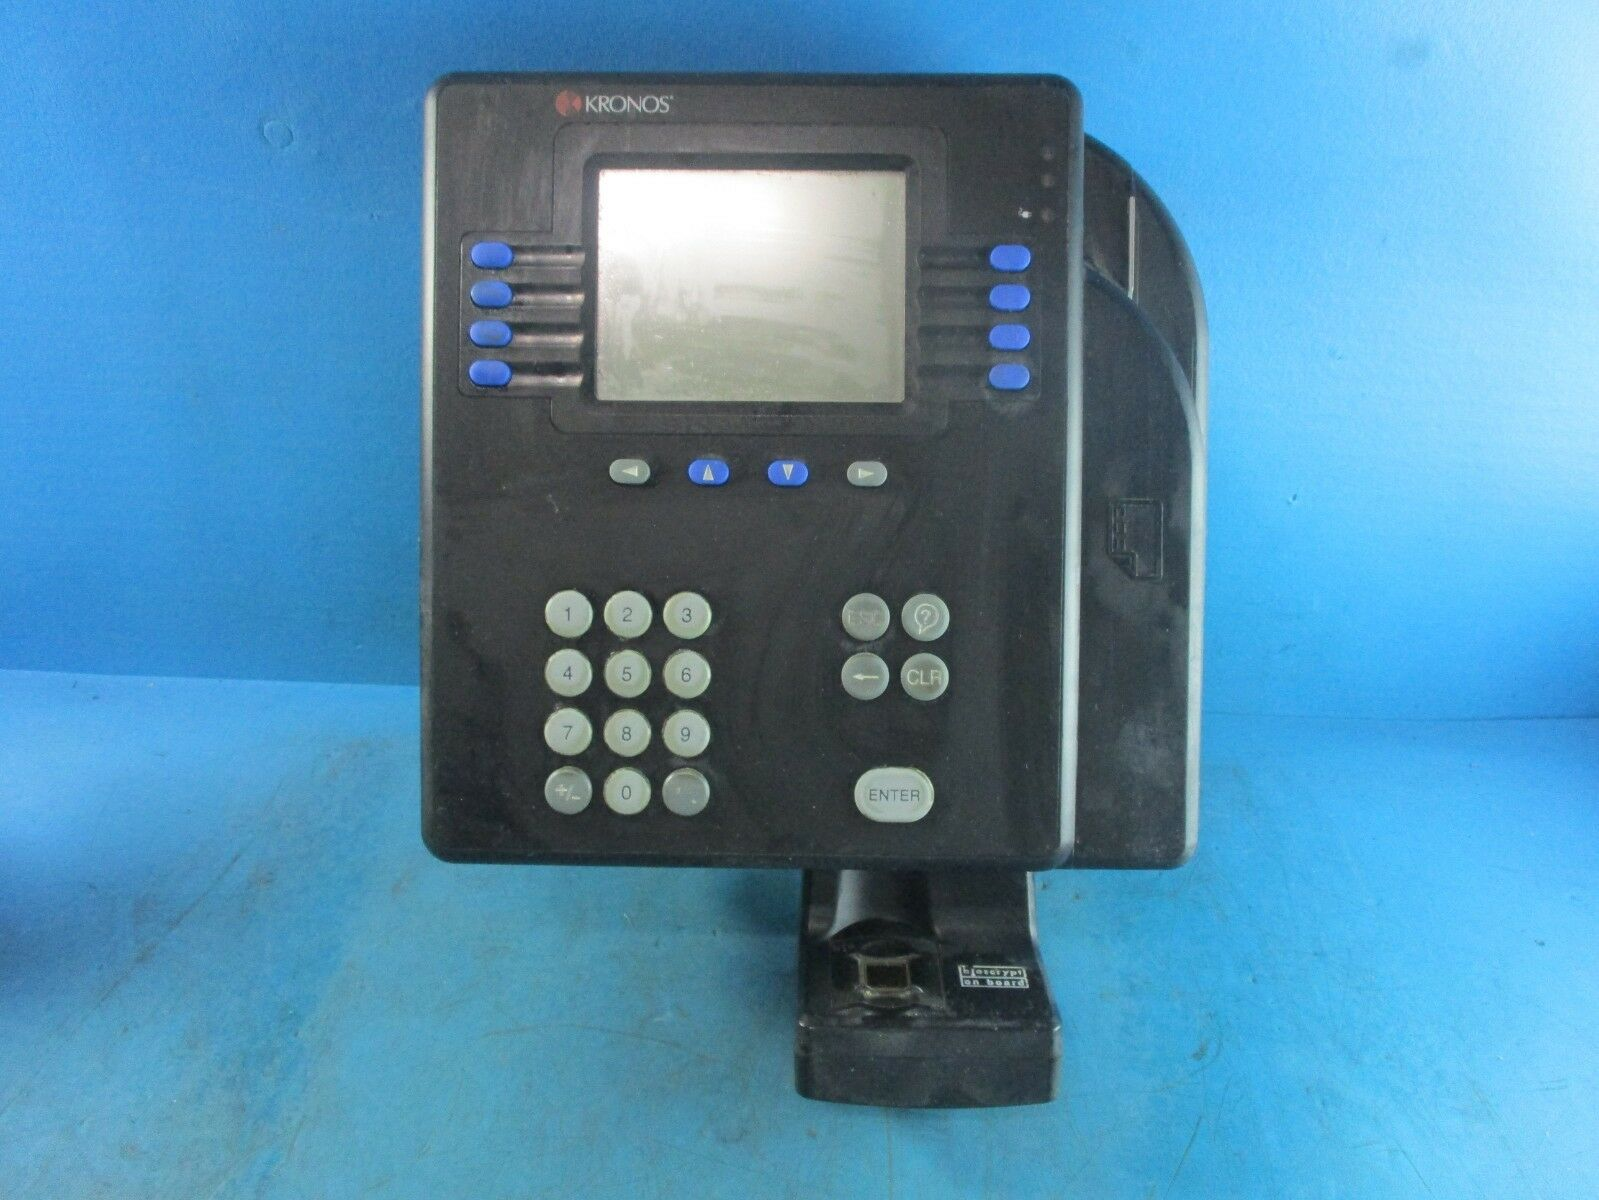 Kronos System 4500 Digital Time Clock Admin Access Card Manager M Card Only